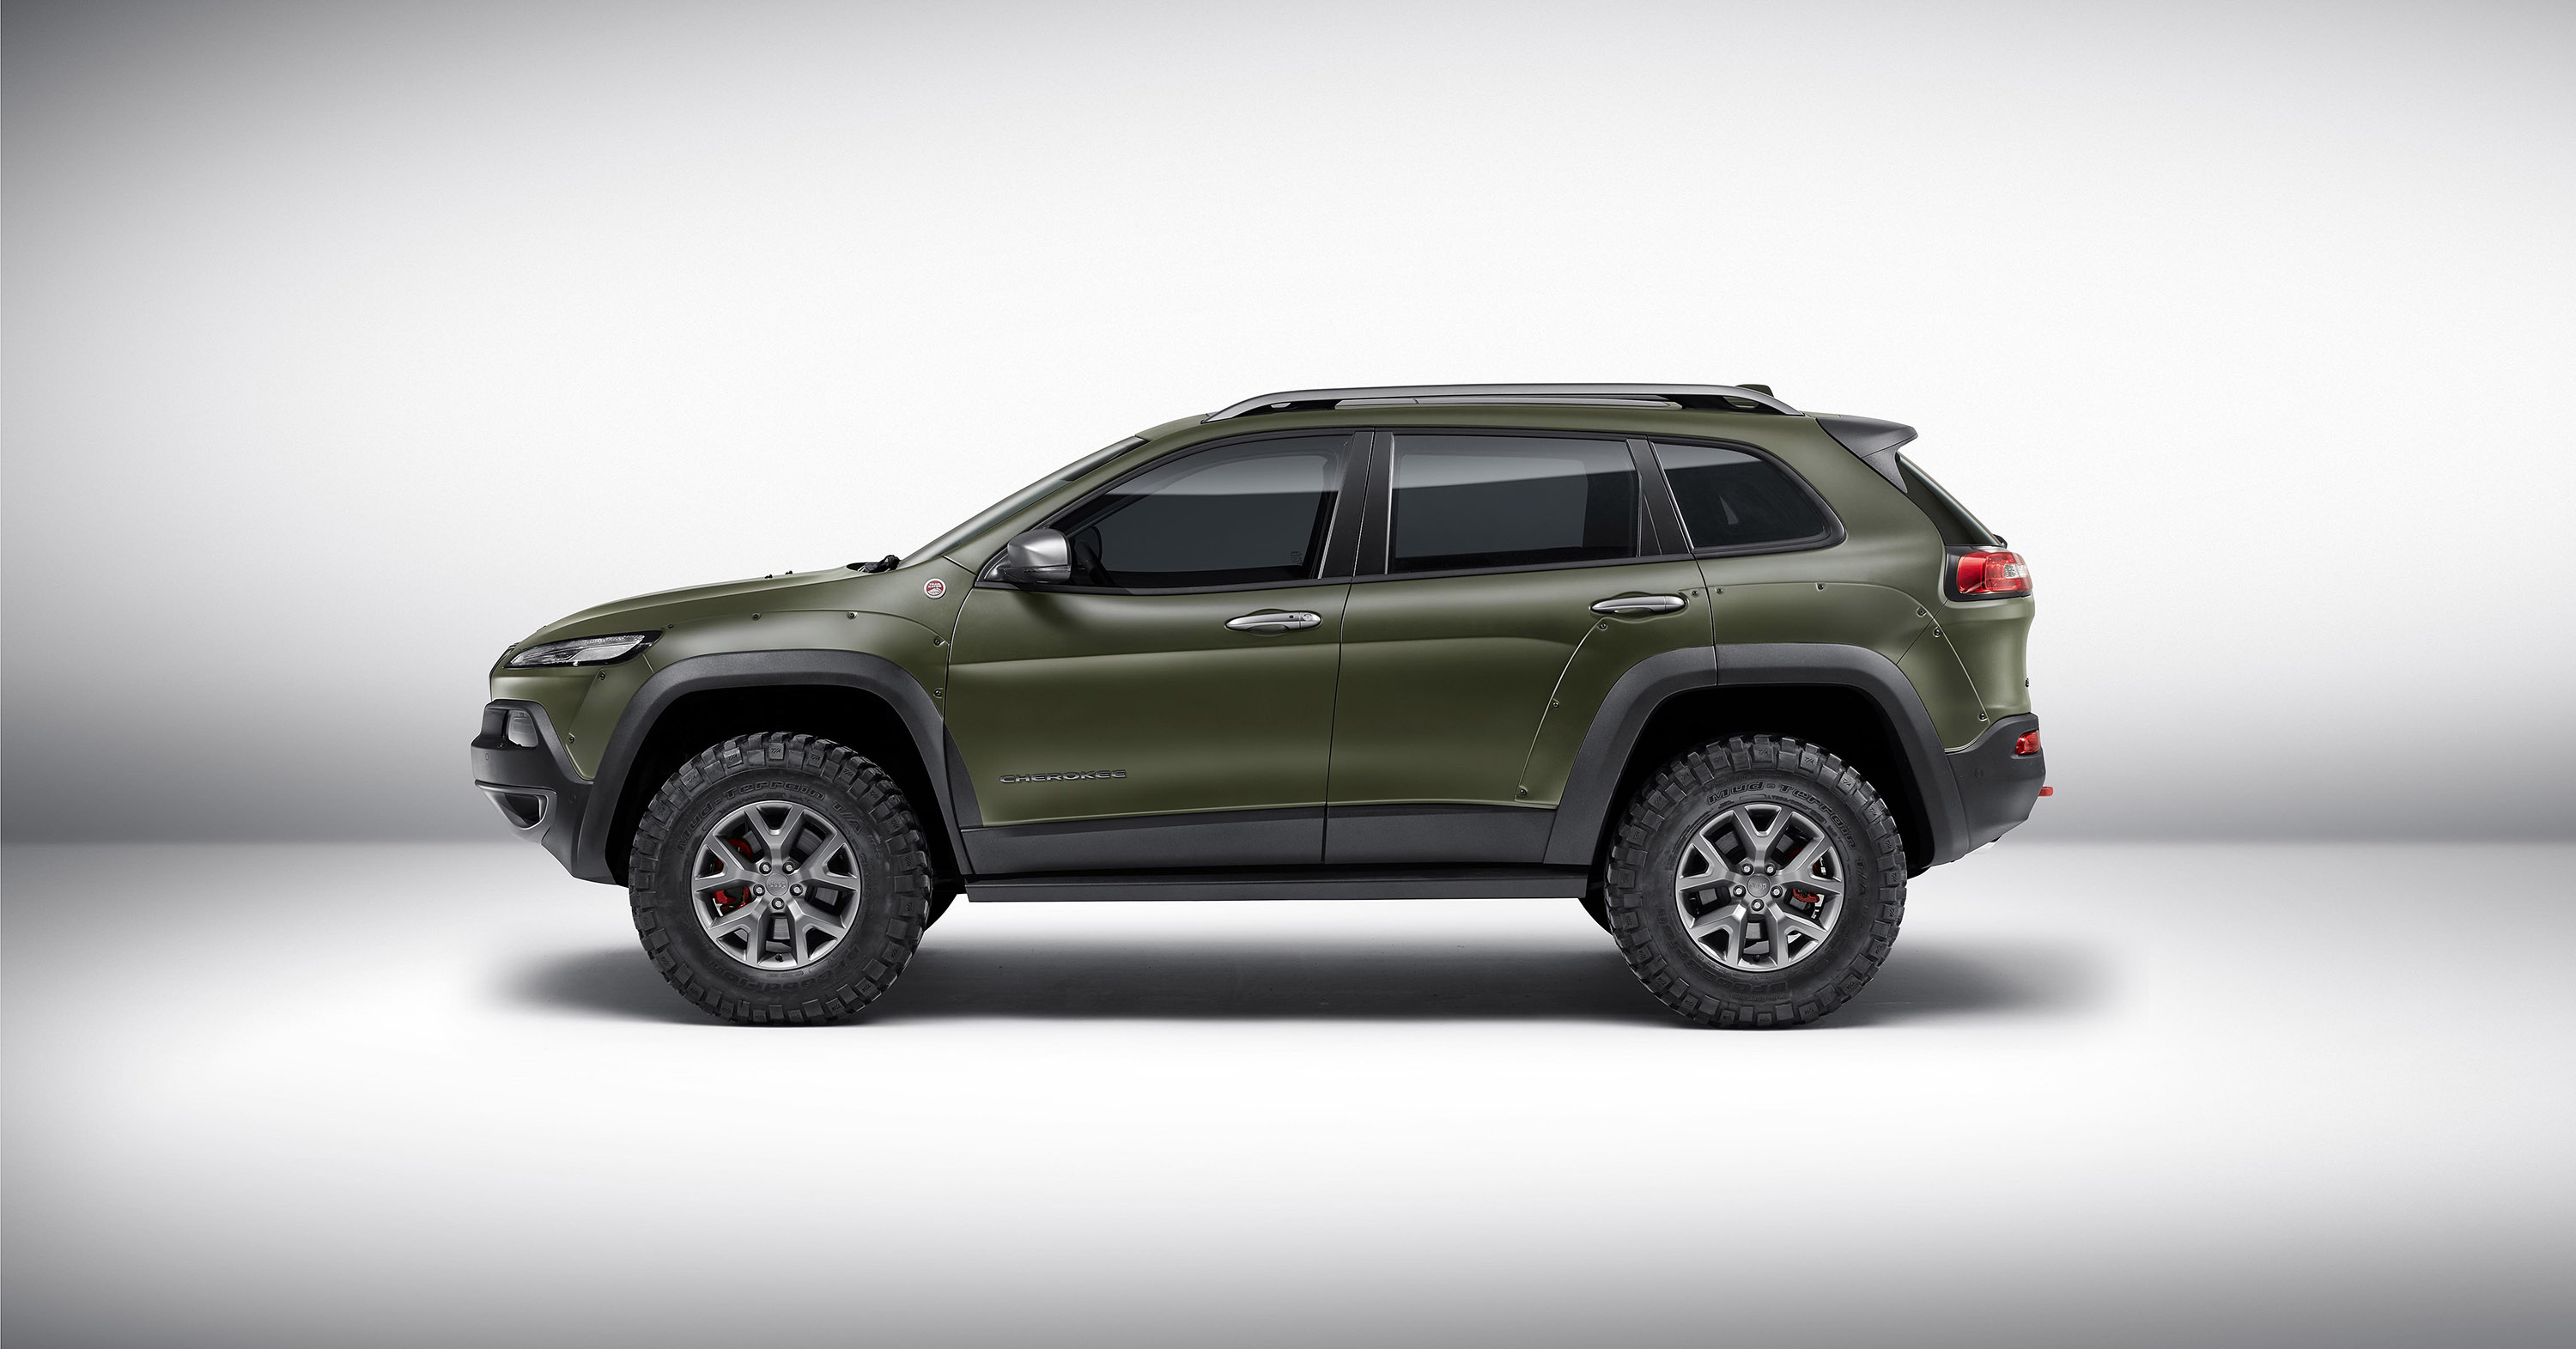 cherokee jeep news racing march limited update ice on vanilla trailhawk four seasons